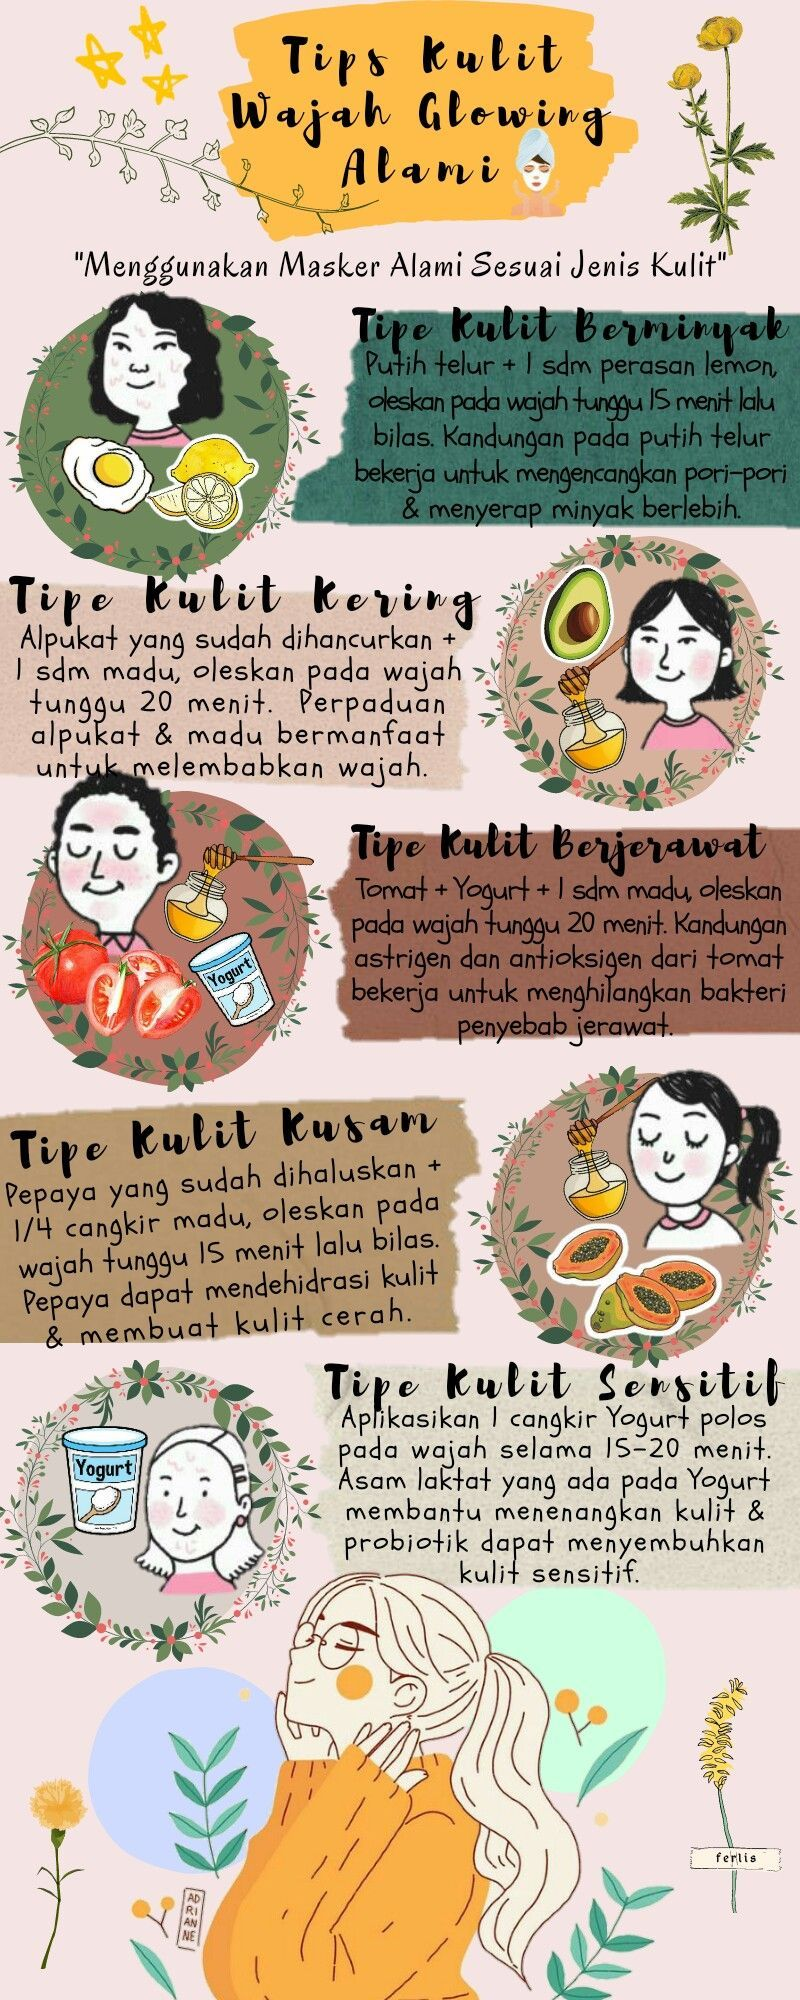 Glowing Kulit Morning Skin Care Routine Steps Tips Wajah Beautiful Skin Care Facial Skin Care Routine Recommended Skin Care Products